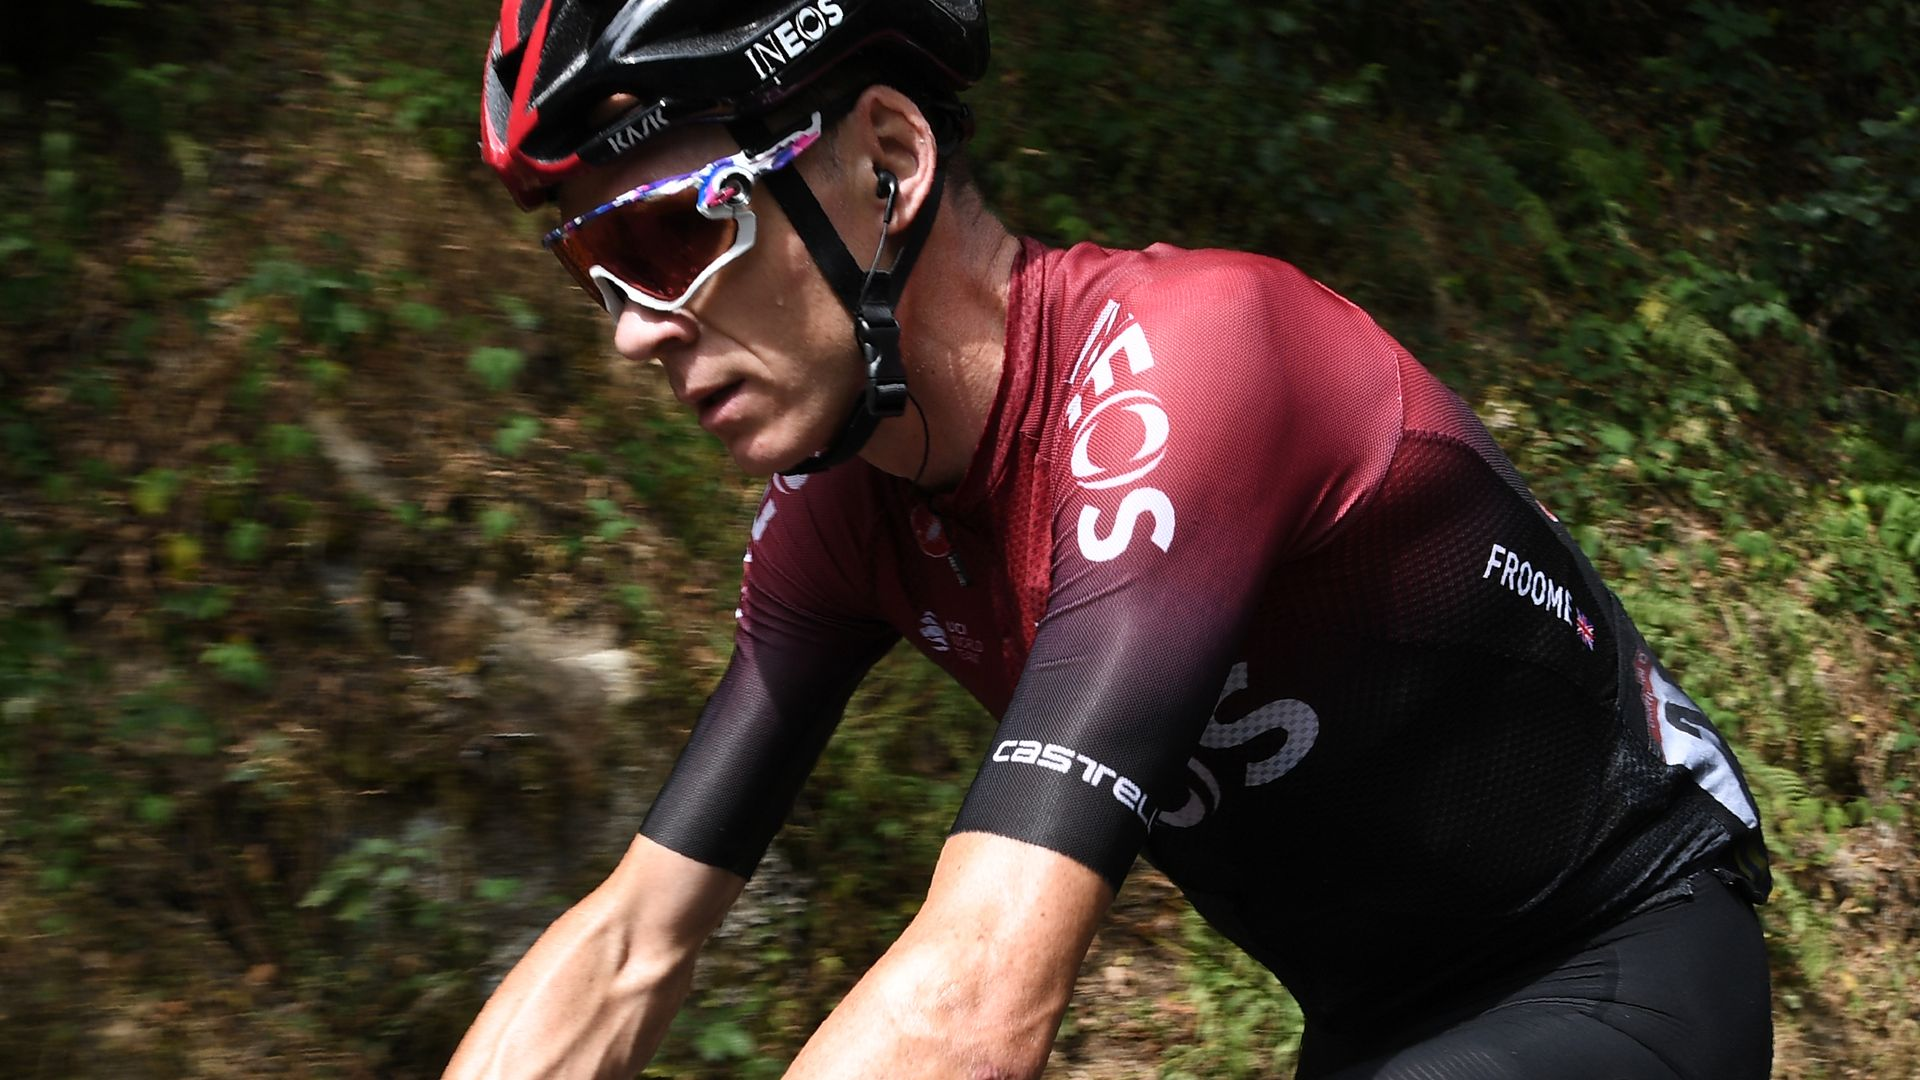 Froome out of contention after Vuelta opener - sky sports